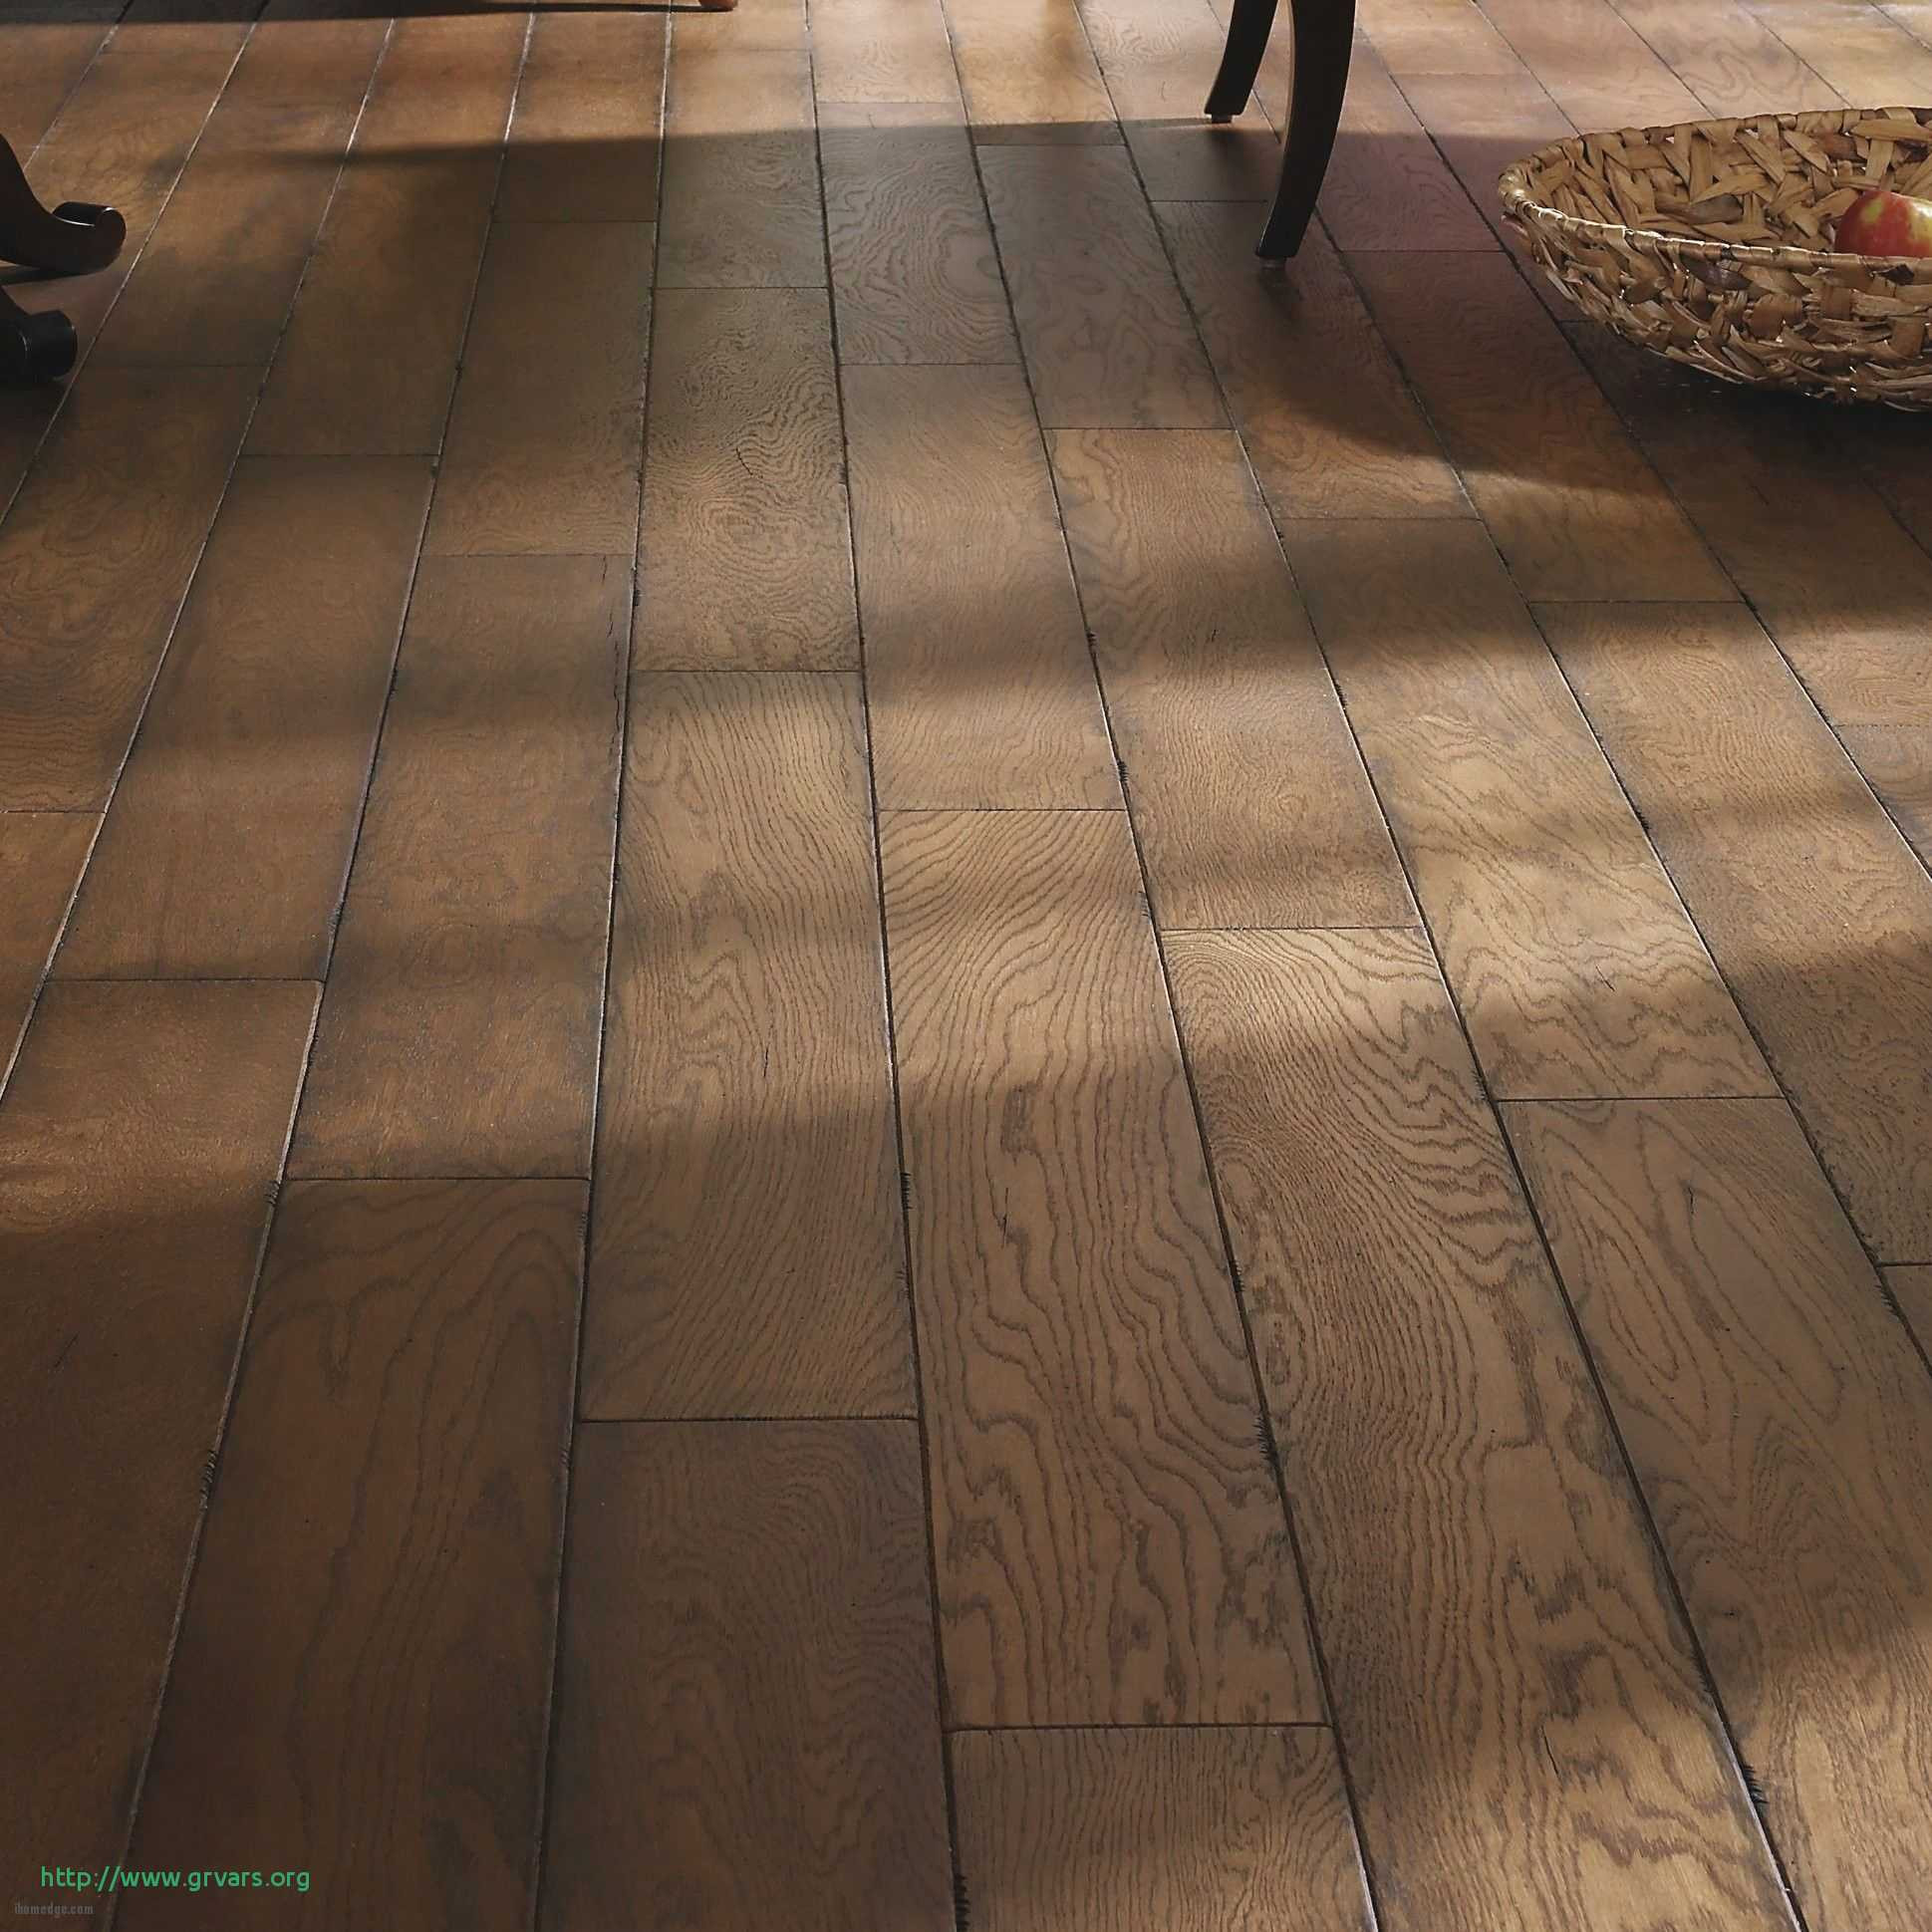 grades of white oak hardwood flooring of 16 beau prefinished quarter sawn white oak flooring ideas blog pertaining to prefinished quarter sawn white oak flooring impressionnant cool lovely white oak hardwood flooring easoon usa 5